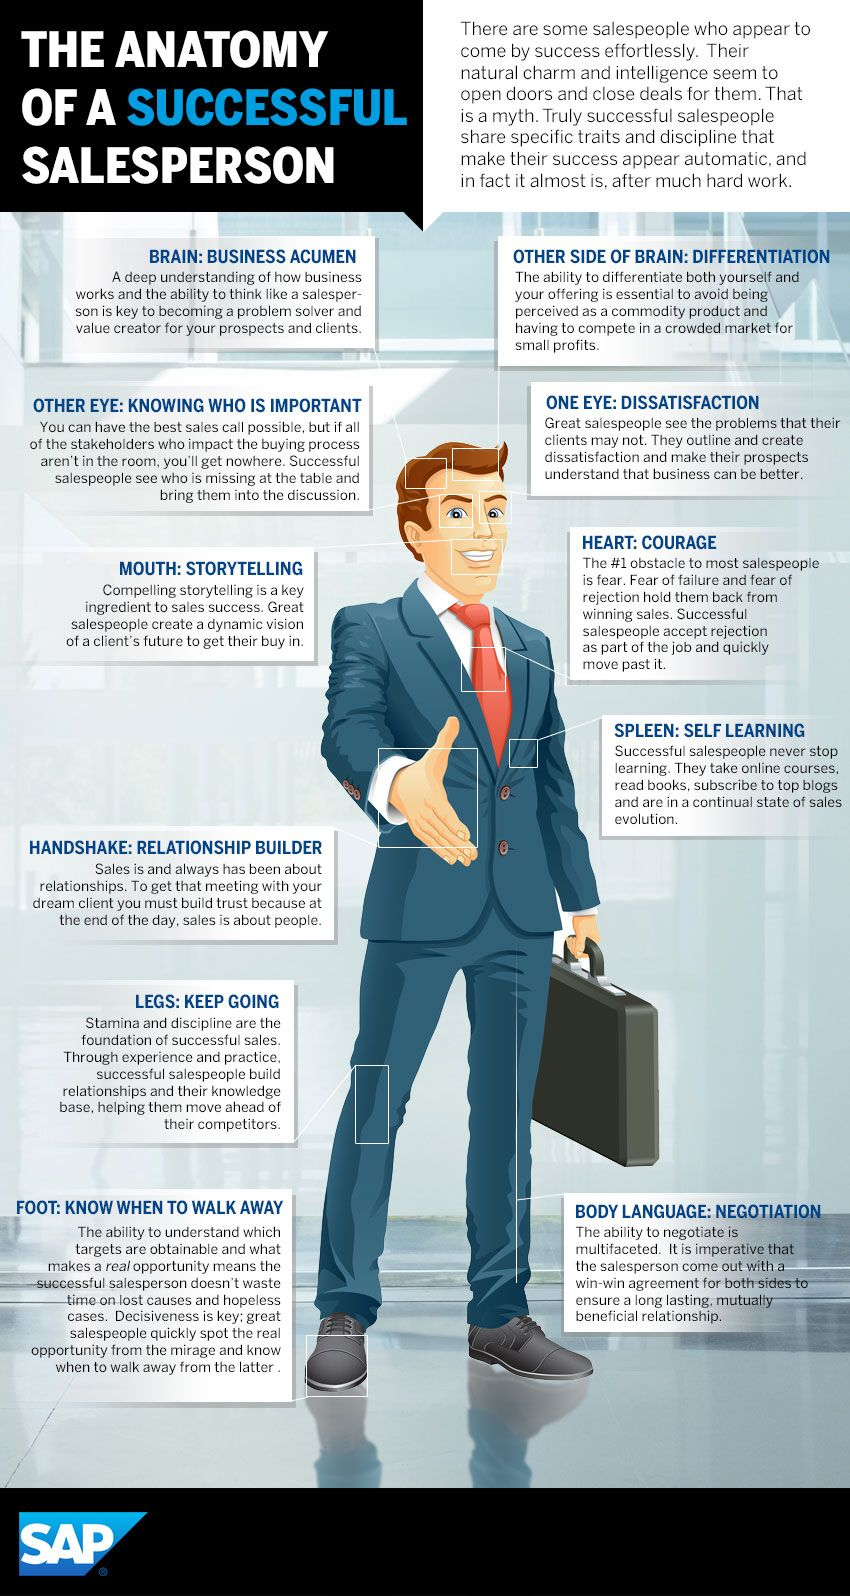 The Anatomy Of A Successful Salesperson  Infographic